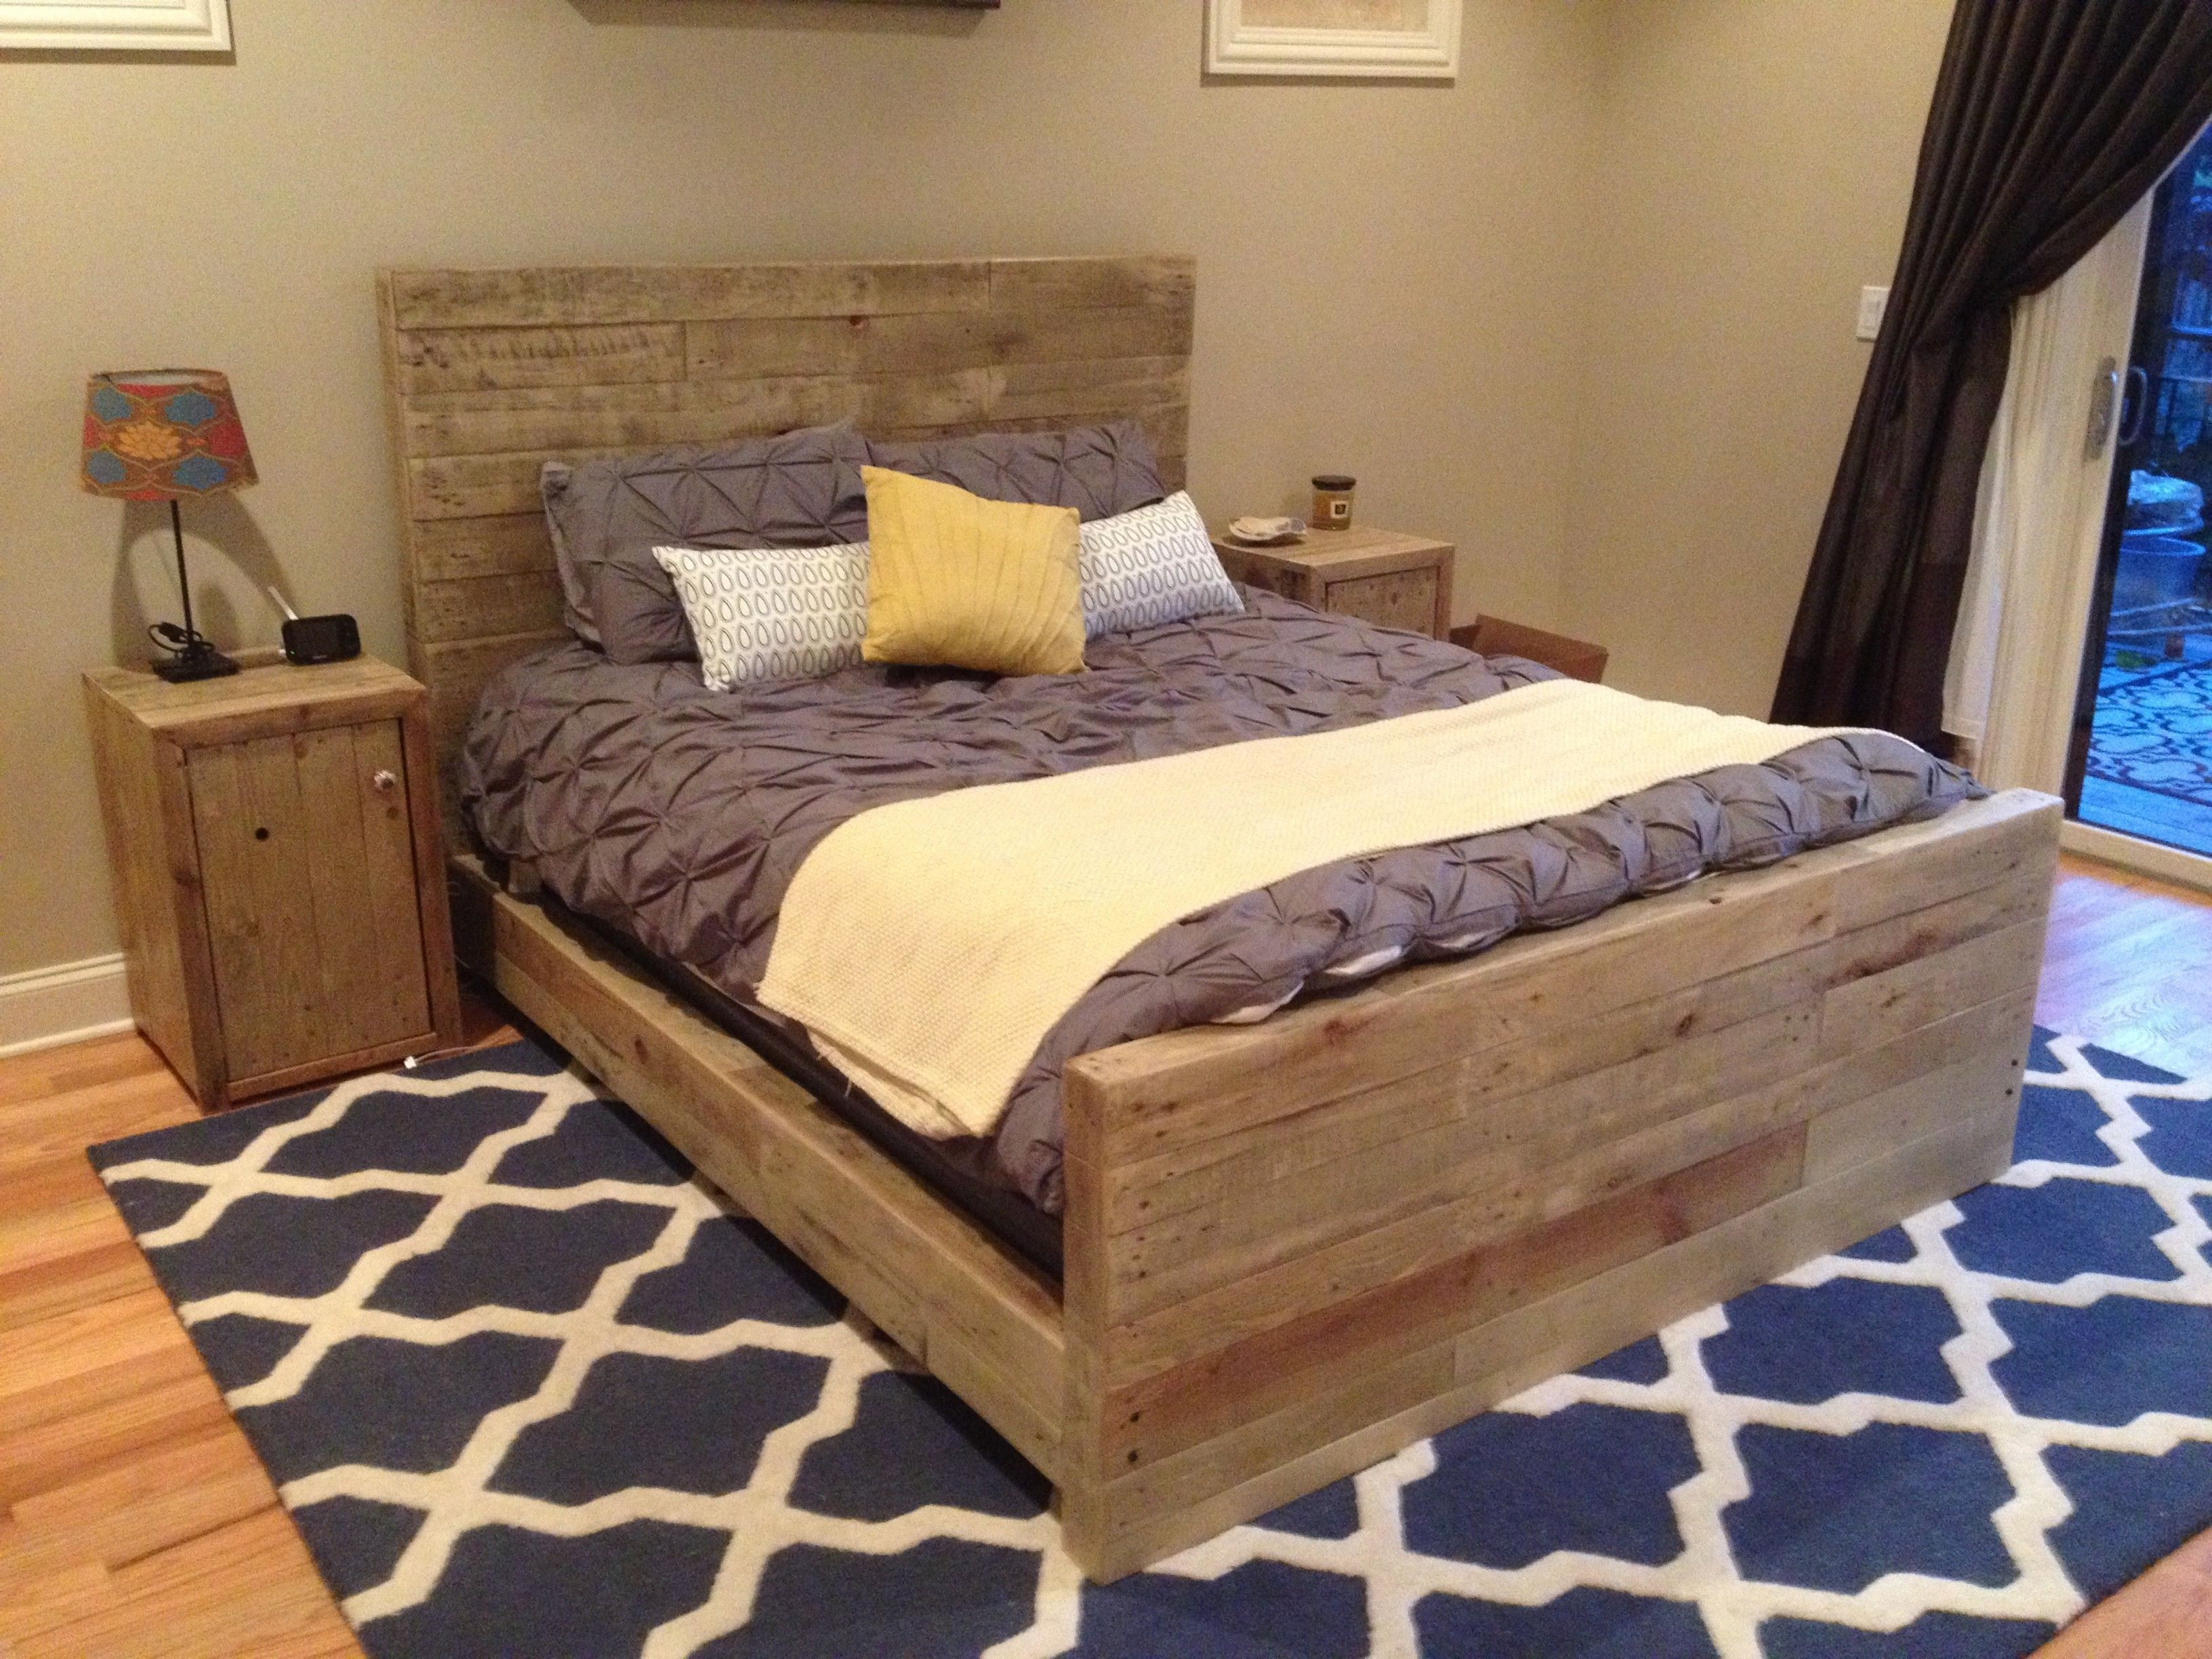 Bed frames build your own platform bed do it yourself bed frame bed frames build your own platform bed do it yourself bed frame how to make solutioingenieria Choice Image